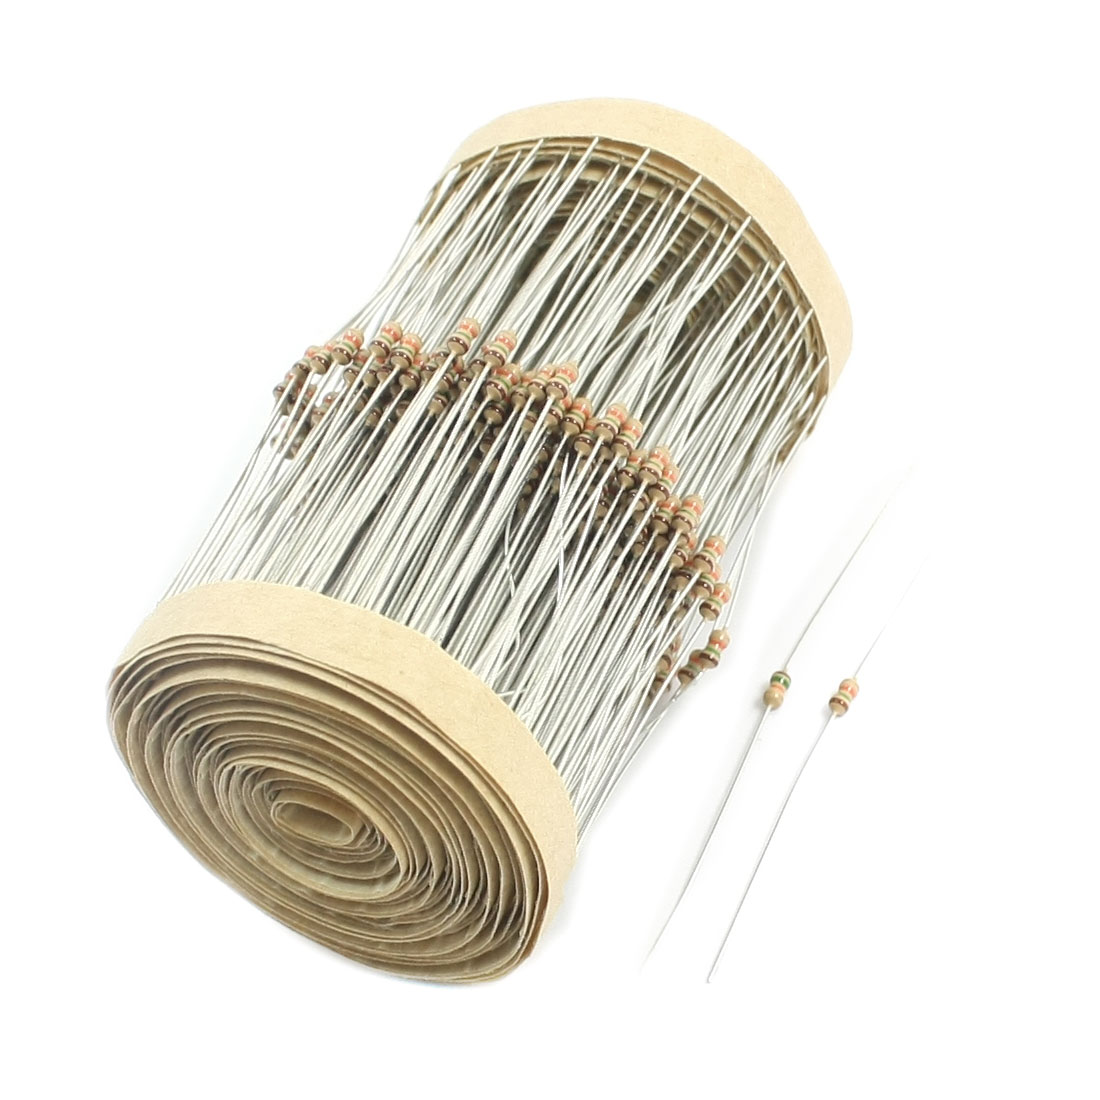 15K Ohm 1/8W Power 5% Tolerance Axial Lead Type Through Hole Mounting 4 Color Ring Carbon Film Fixed Resistors 400 Pcs